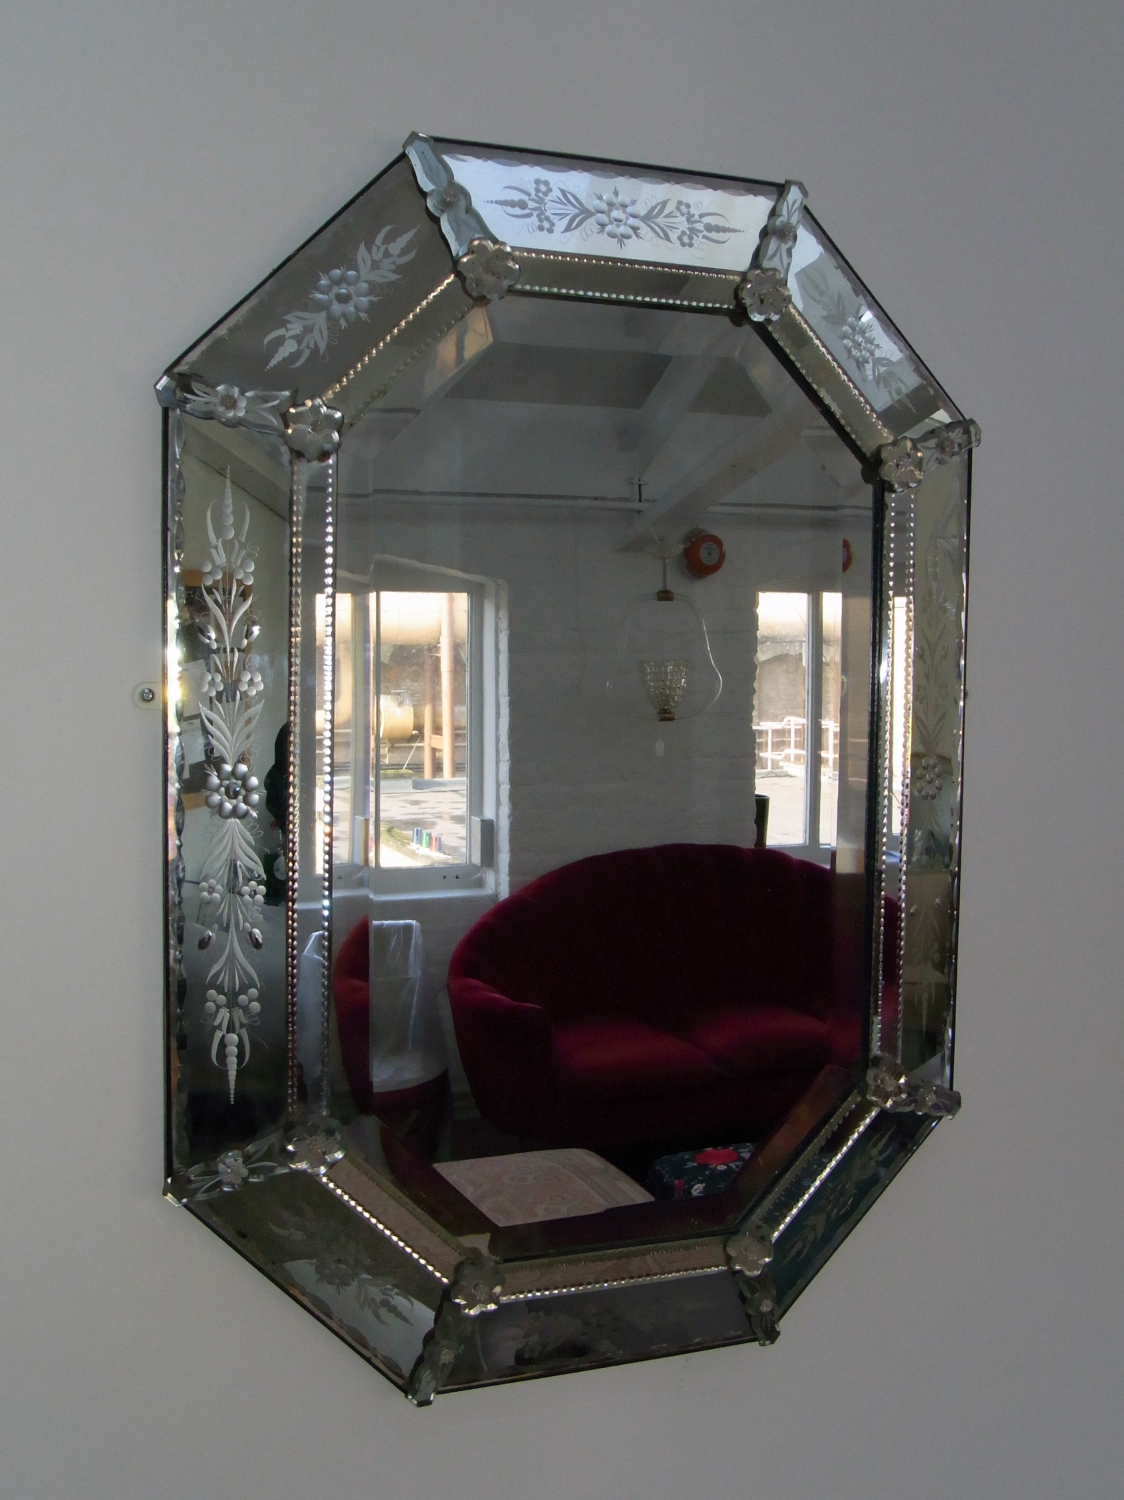 Late 19th Century French Venetian style mirror